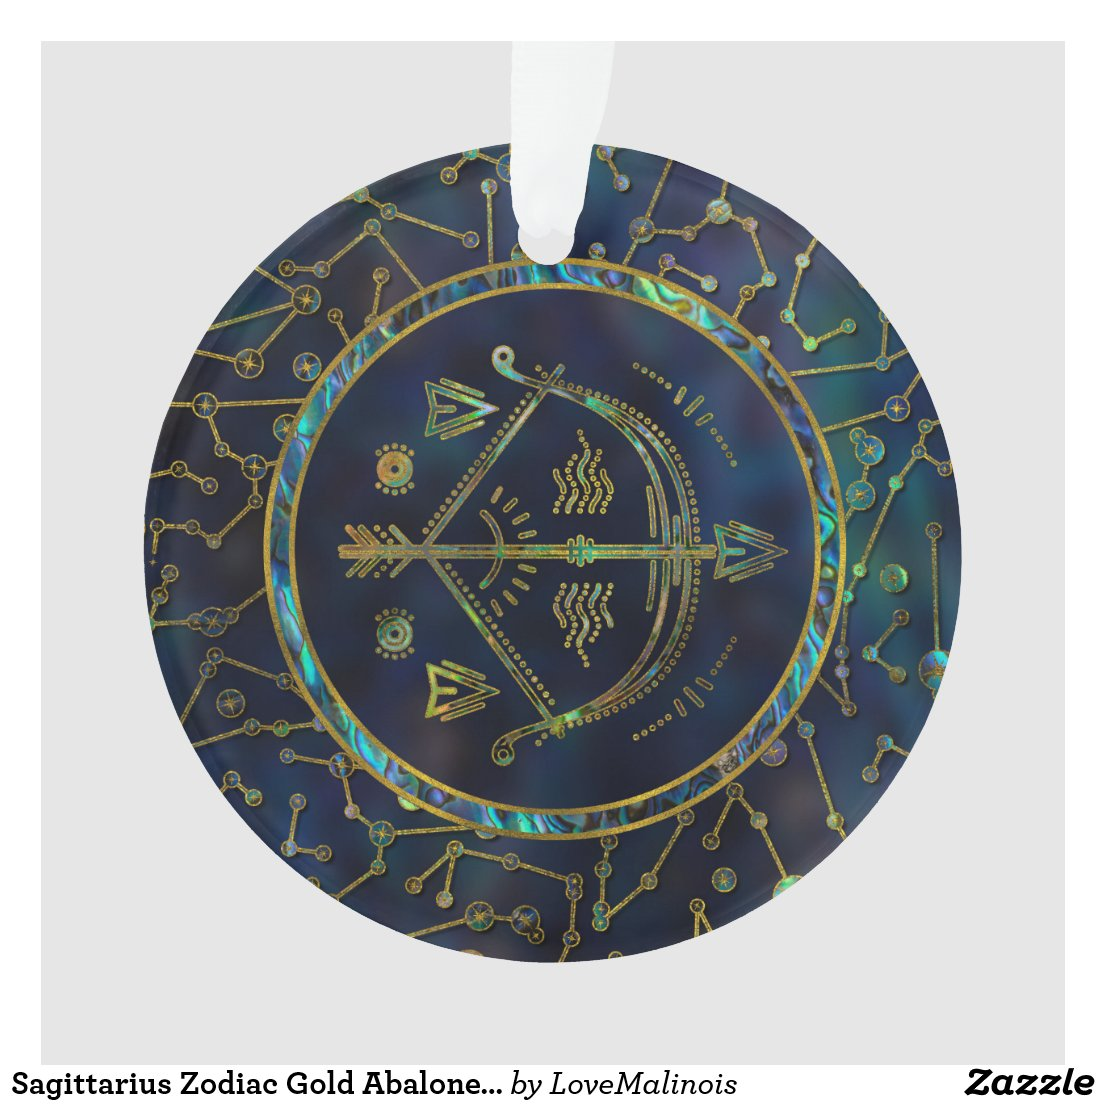 Sagittarius Zodiac Gold Abalone on Constellation Ornament